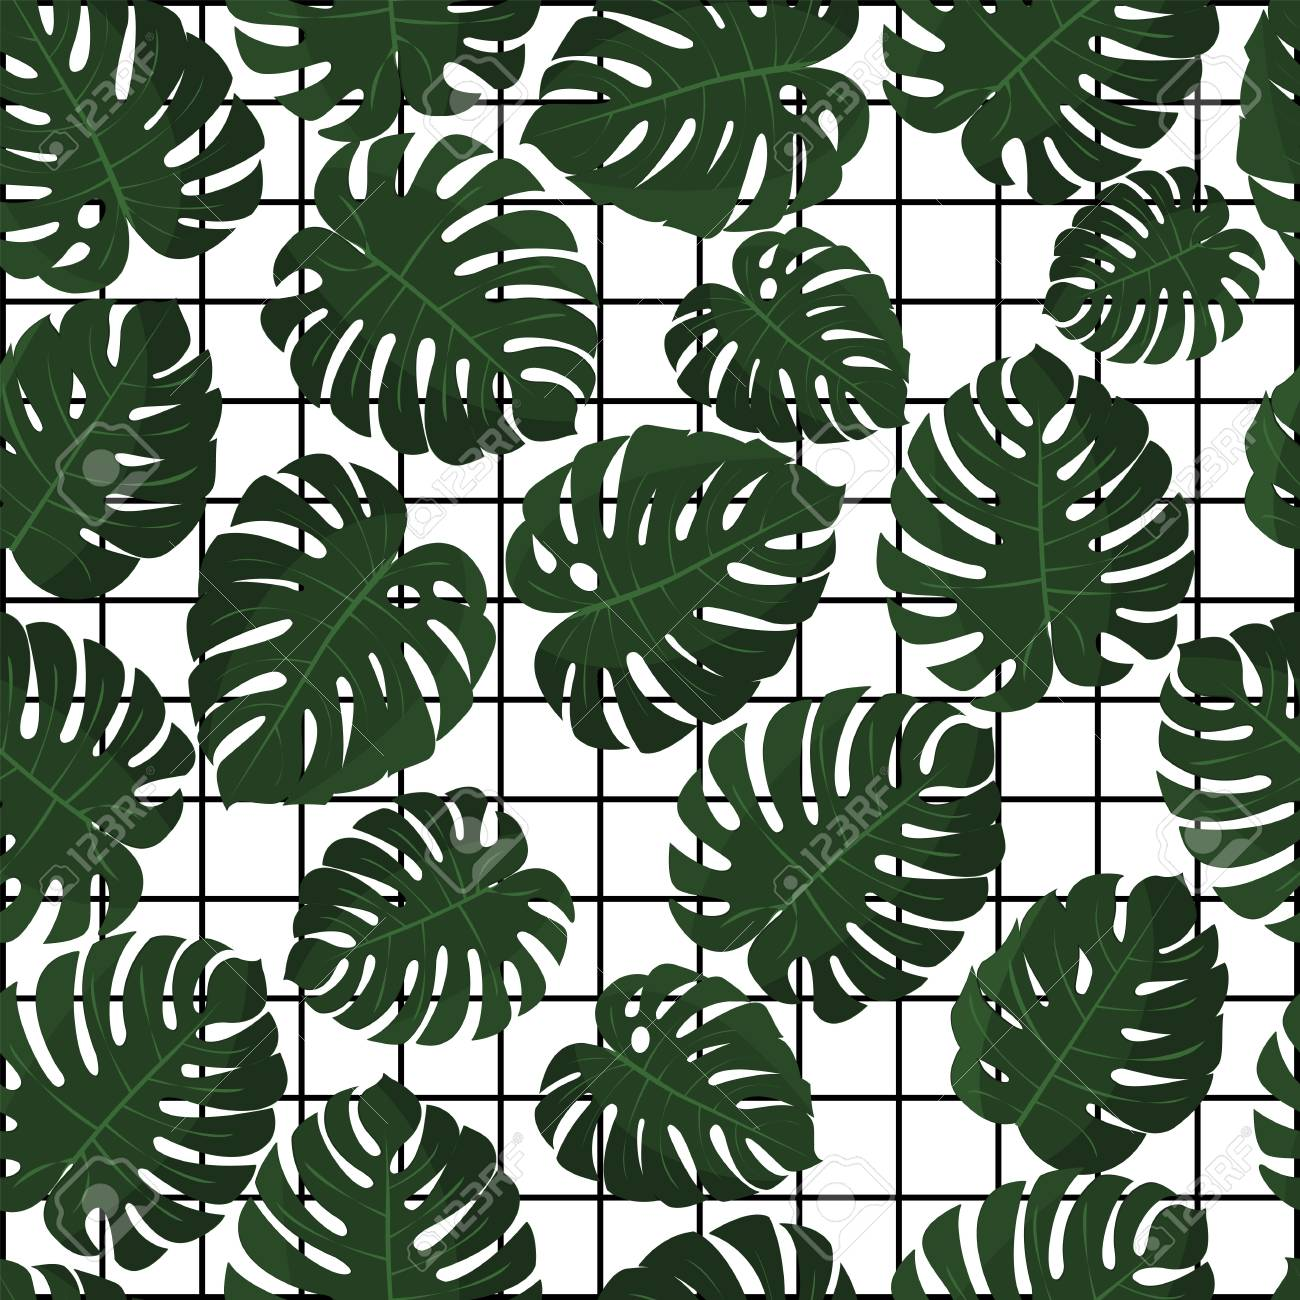 Tropical Leaves Vector Seamless Pattern In Swatch Jungle Leaves Royalty Free Cliparts Vectors And Stock Illustration Image 79965566 Download premium illustration of bronze tropical leaves patterned poster by chim about rose gold, bronze, bronze leave, plain brown and copper 595545. tropical leaves vector seamless pattern in swatch jungle leaves